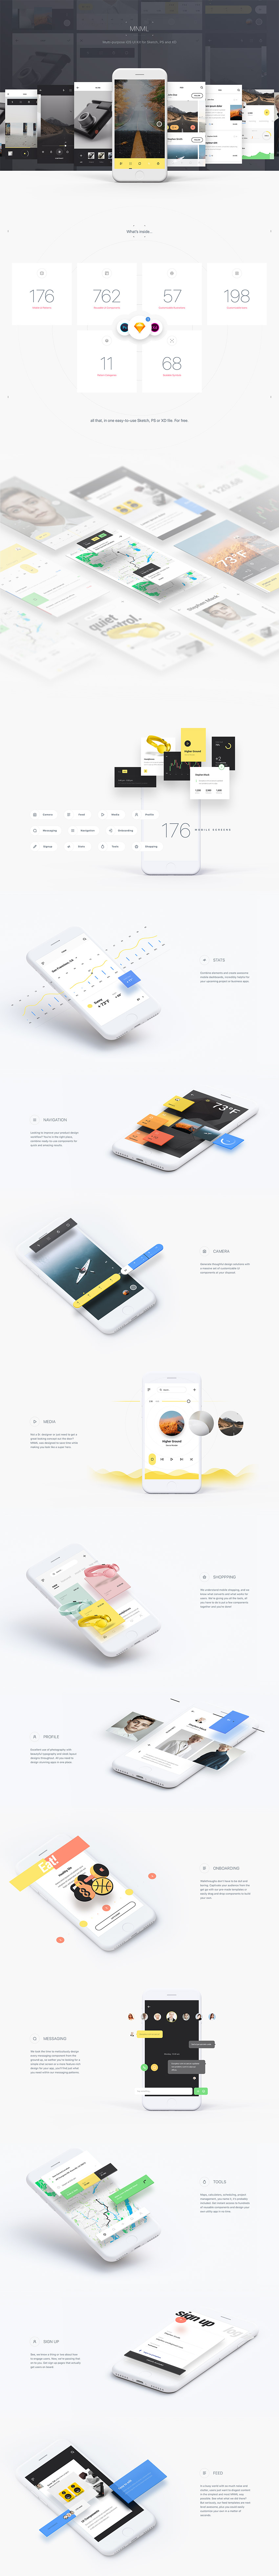 MNML App Design UI Kit for Sketch, PSD and XD - iOS Freebie